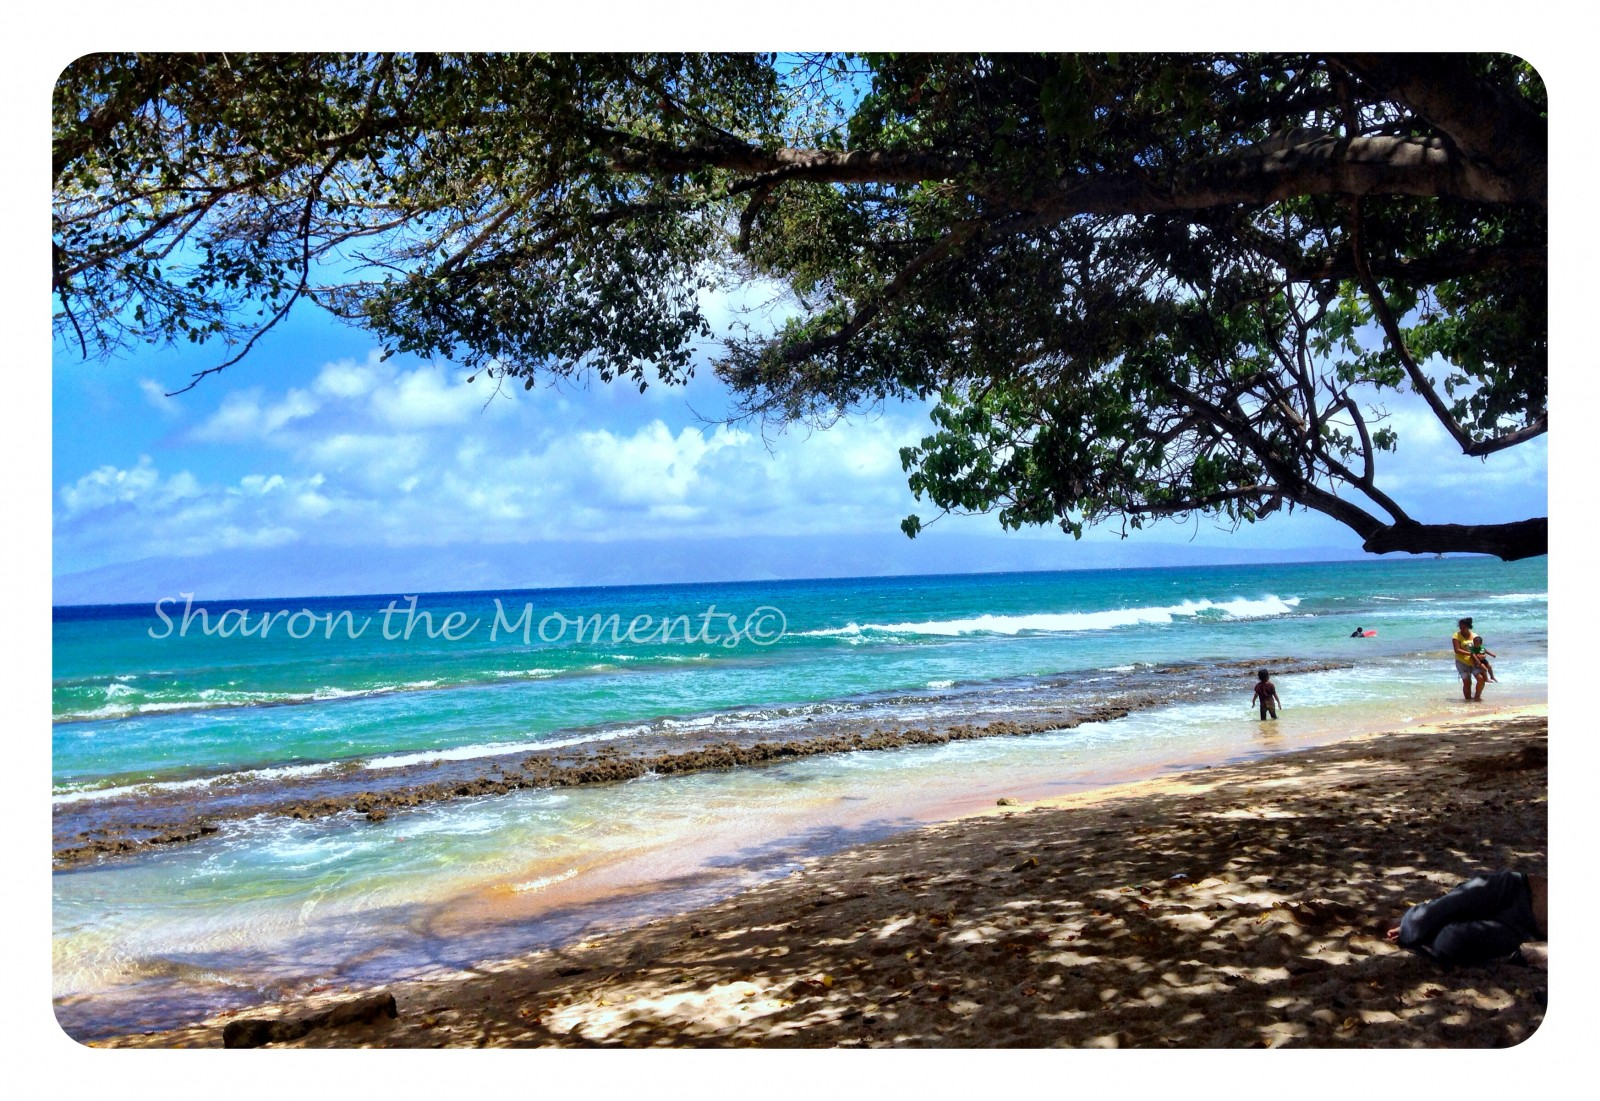 Our Shoreline SNUBA Experience in Kaanapali Beach in Maui Hawaii |Sharon the Moments Blog